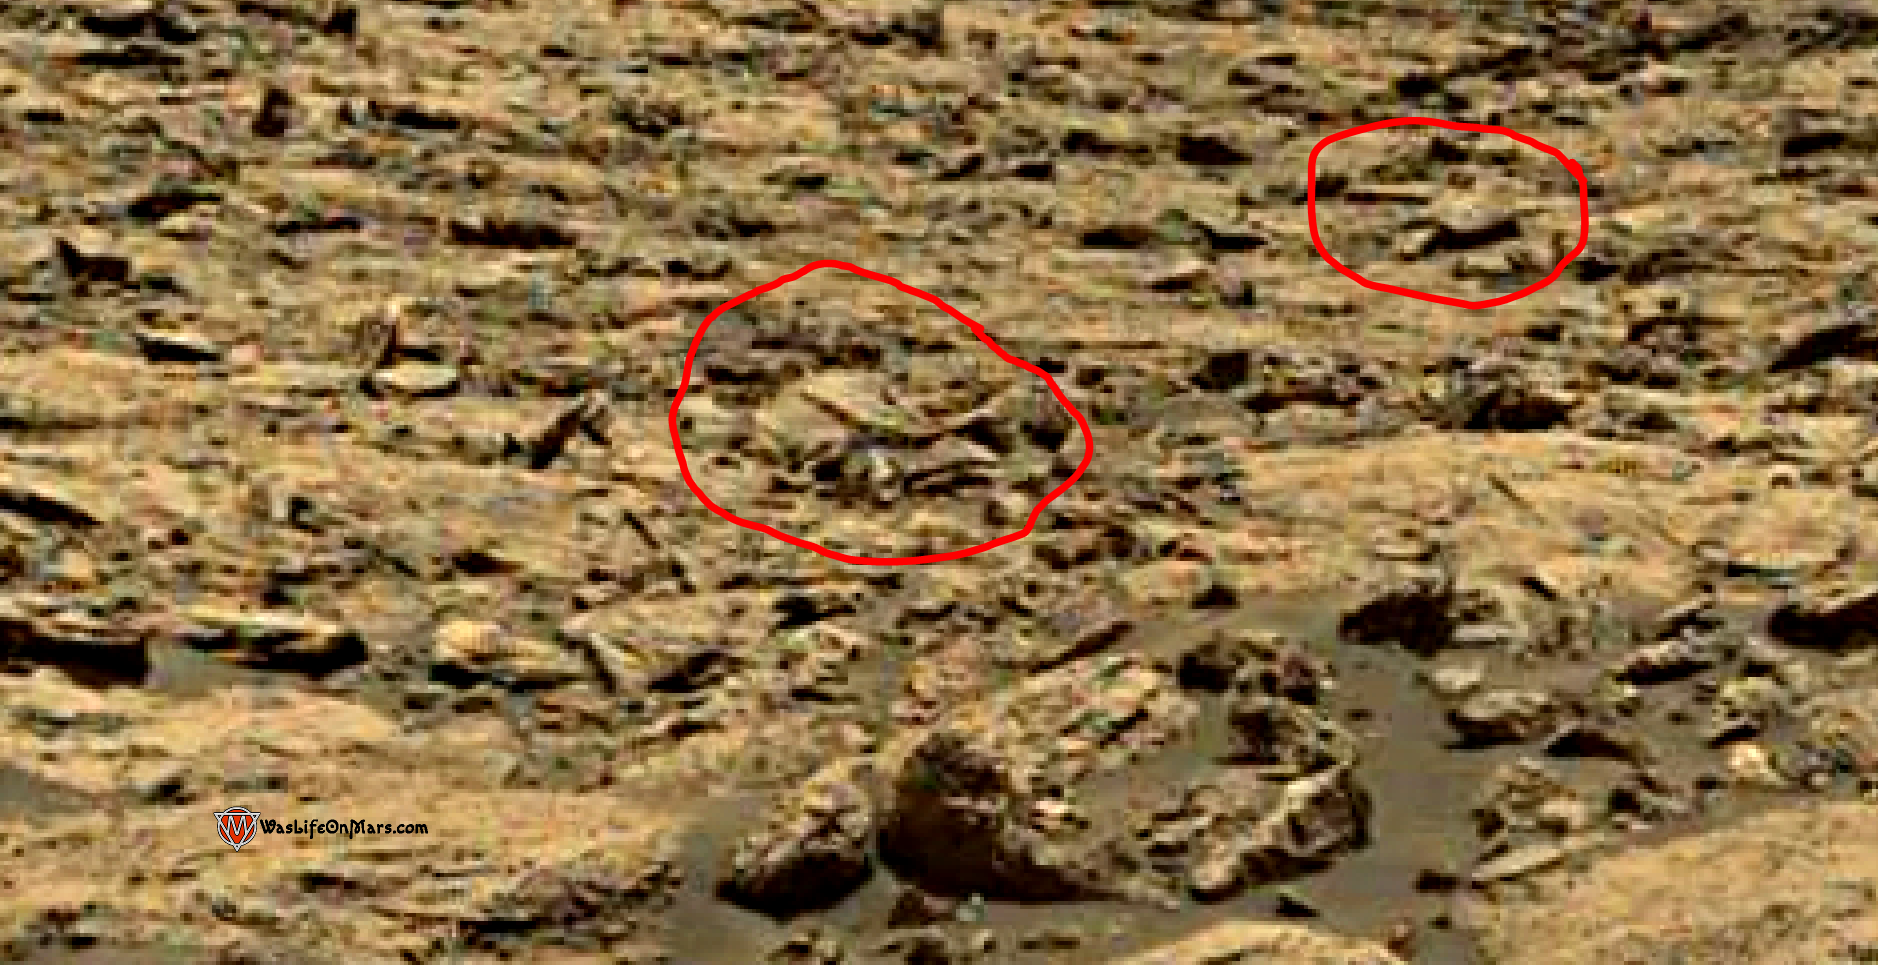 mars sol 1428 anomaly artifacts 3a - the duck - was life on mars